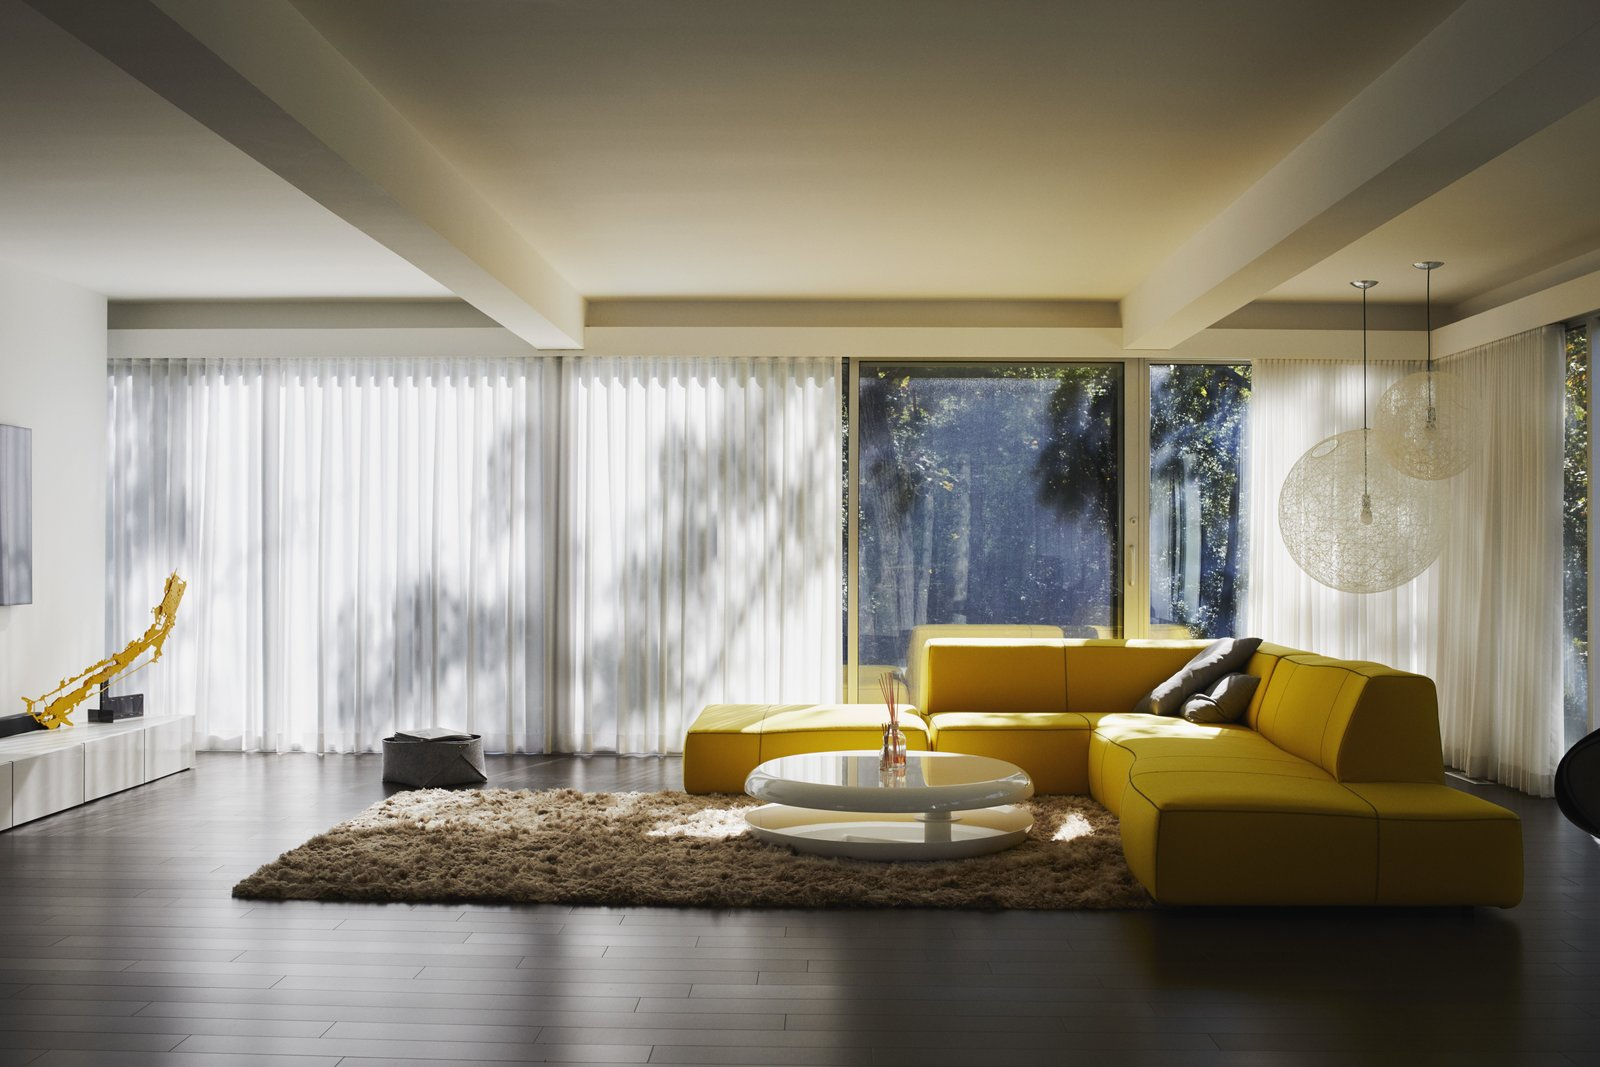 Living Room, Rug Floor, Dark Hardwood Floor, Sofa, Pendant Lighting, and Coffee Tables In keeping with Viks's design, the living room remains on the second floor. A bright yellow artwork by Ken'ichiro Taniguchi complements the Bend Sofa by Patricia Urquiola for B&B Italia. The Random pendant lights are by Bertjan Pot for Moooi, the Yo-Yo coffee table is by Emanuele Zenere, and the Maltino Rug is by Linie Design. The hardwood flooring is from the Admiration line by Mirage.  Photo 6 of 15 in Once Covered in Mold, a Midcentury Gem Outside Chicago Is Reborn